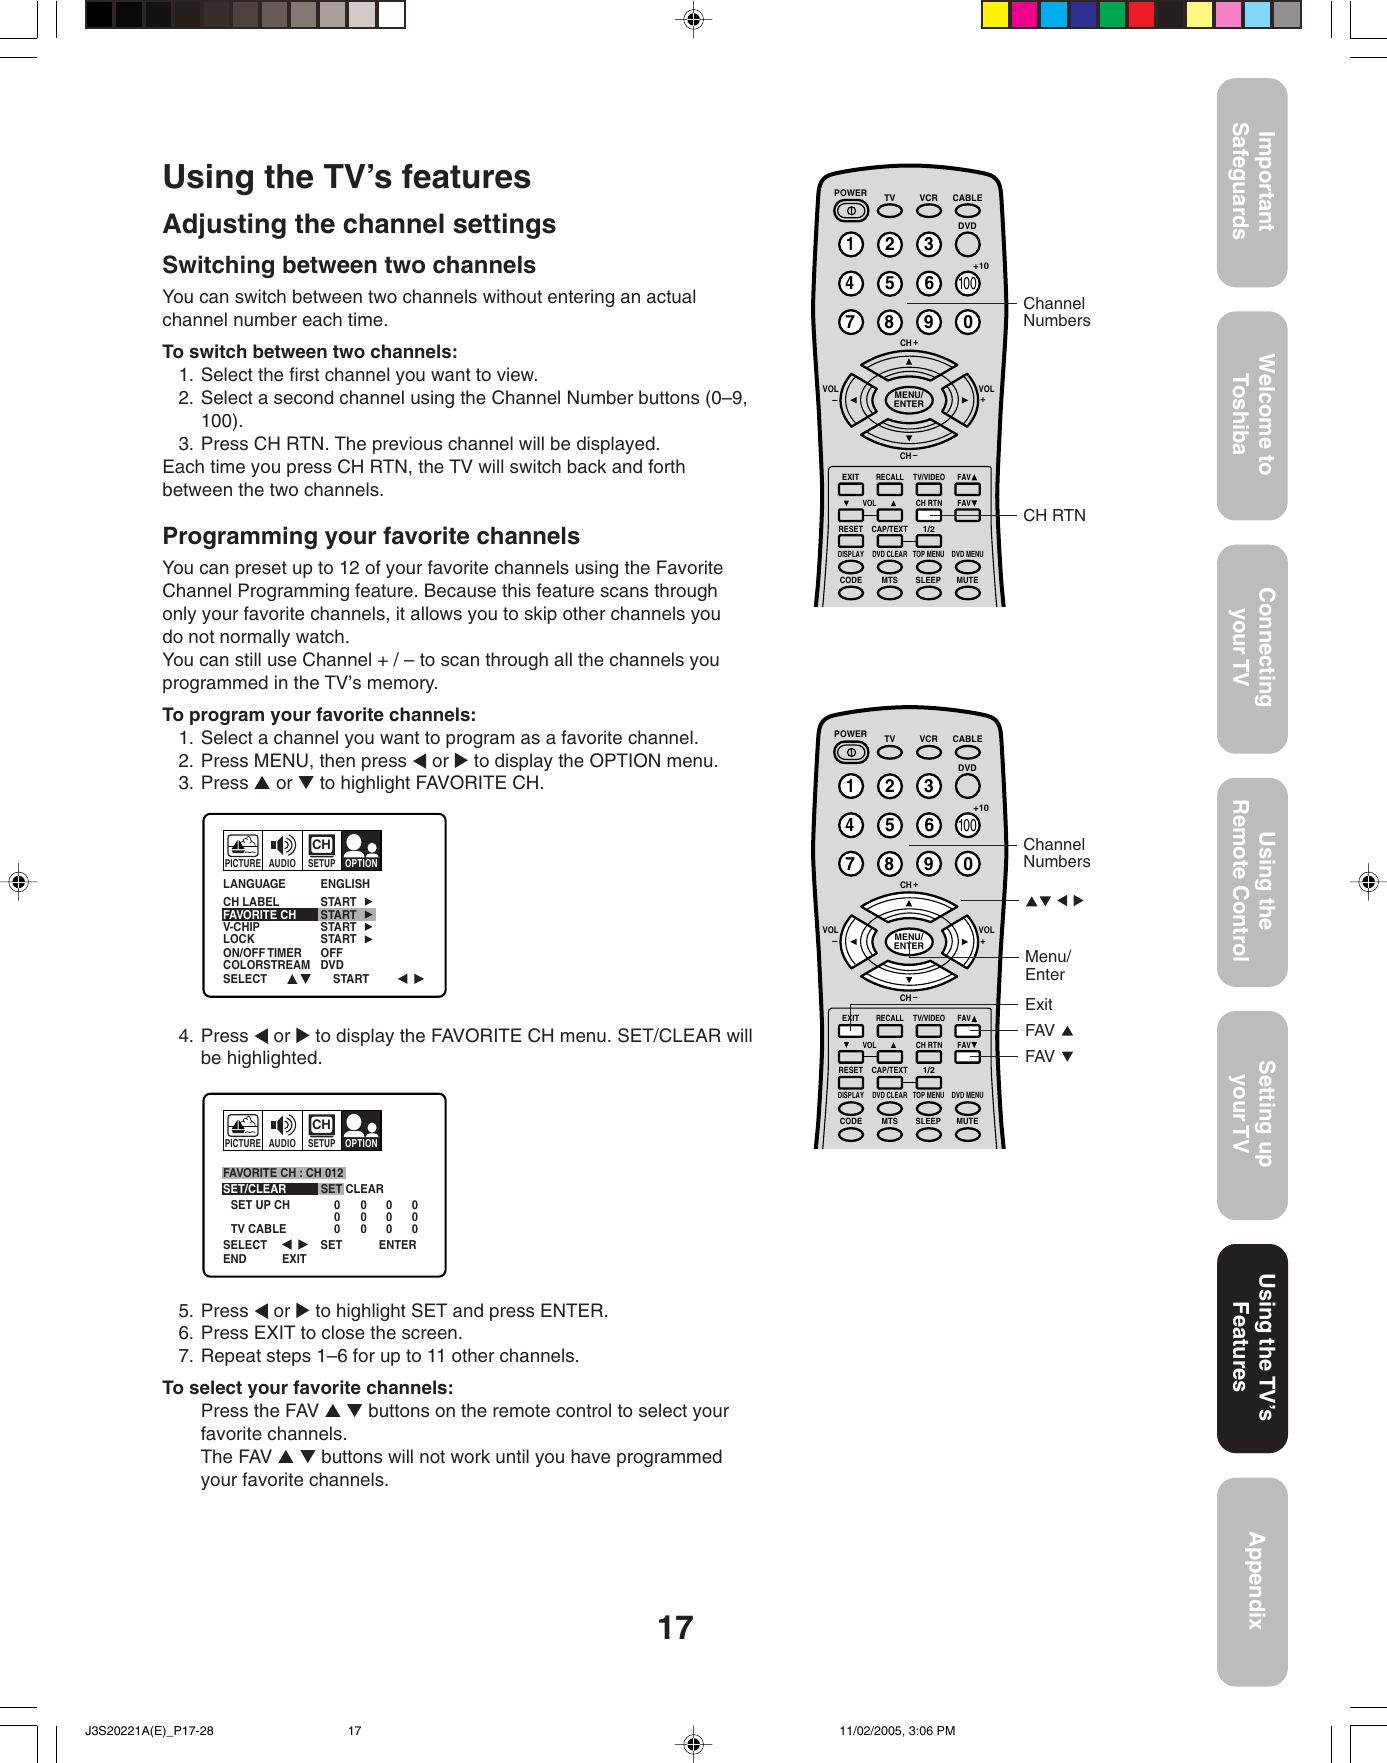 Toshiba 27A45 Owners Manual